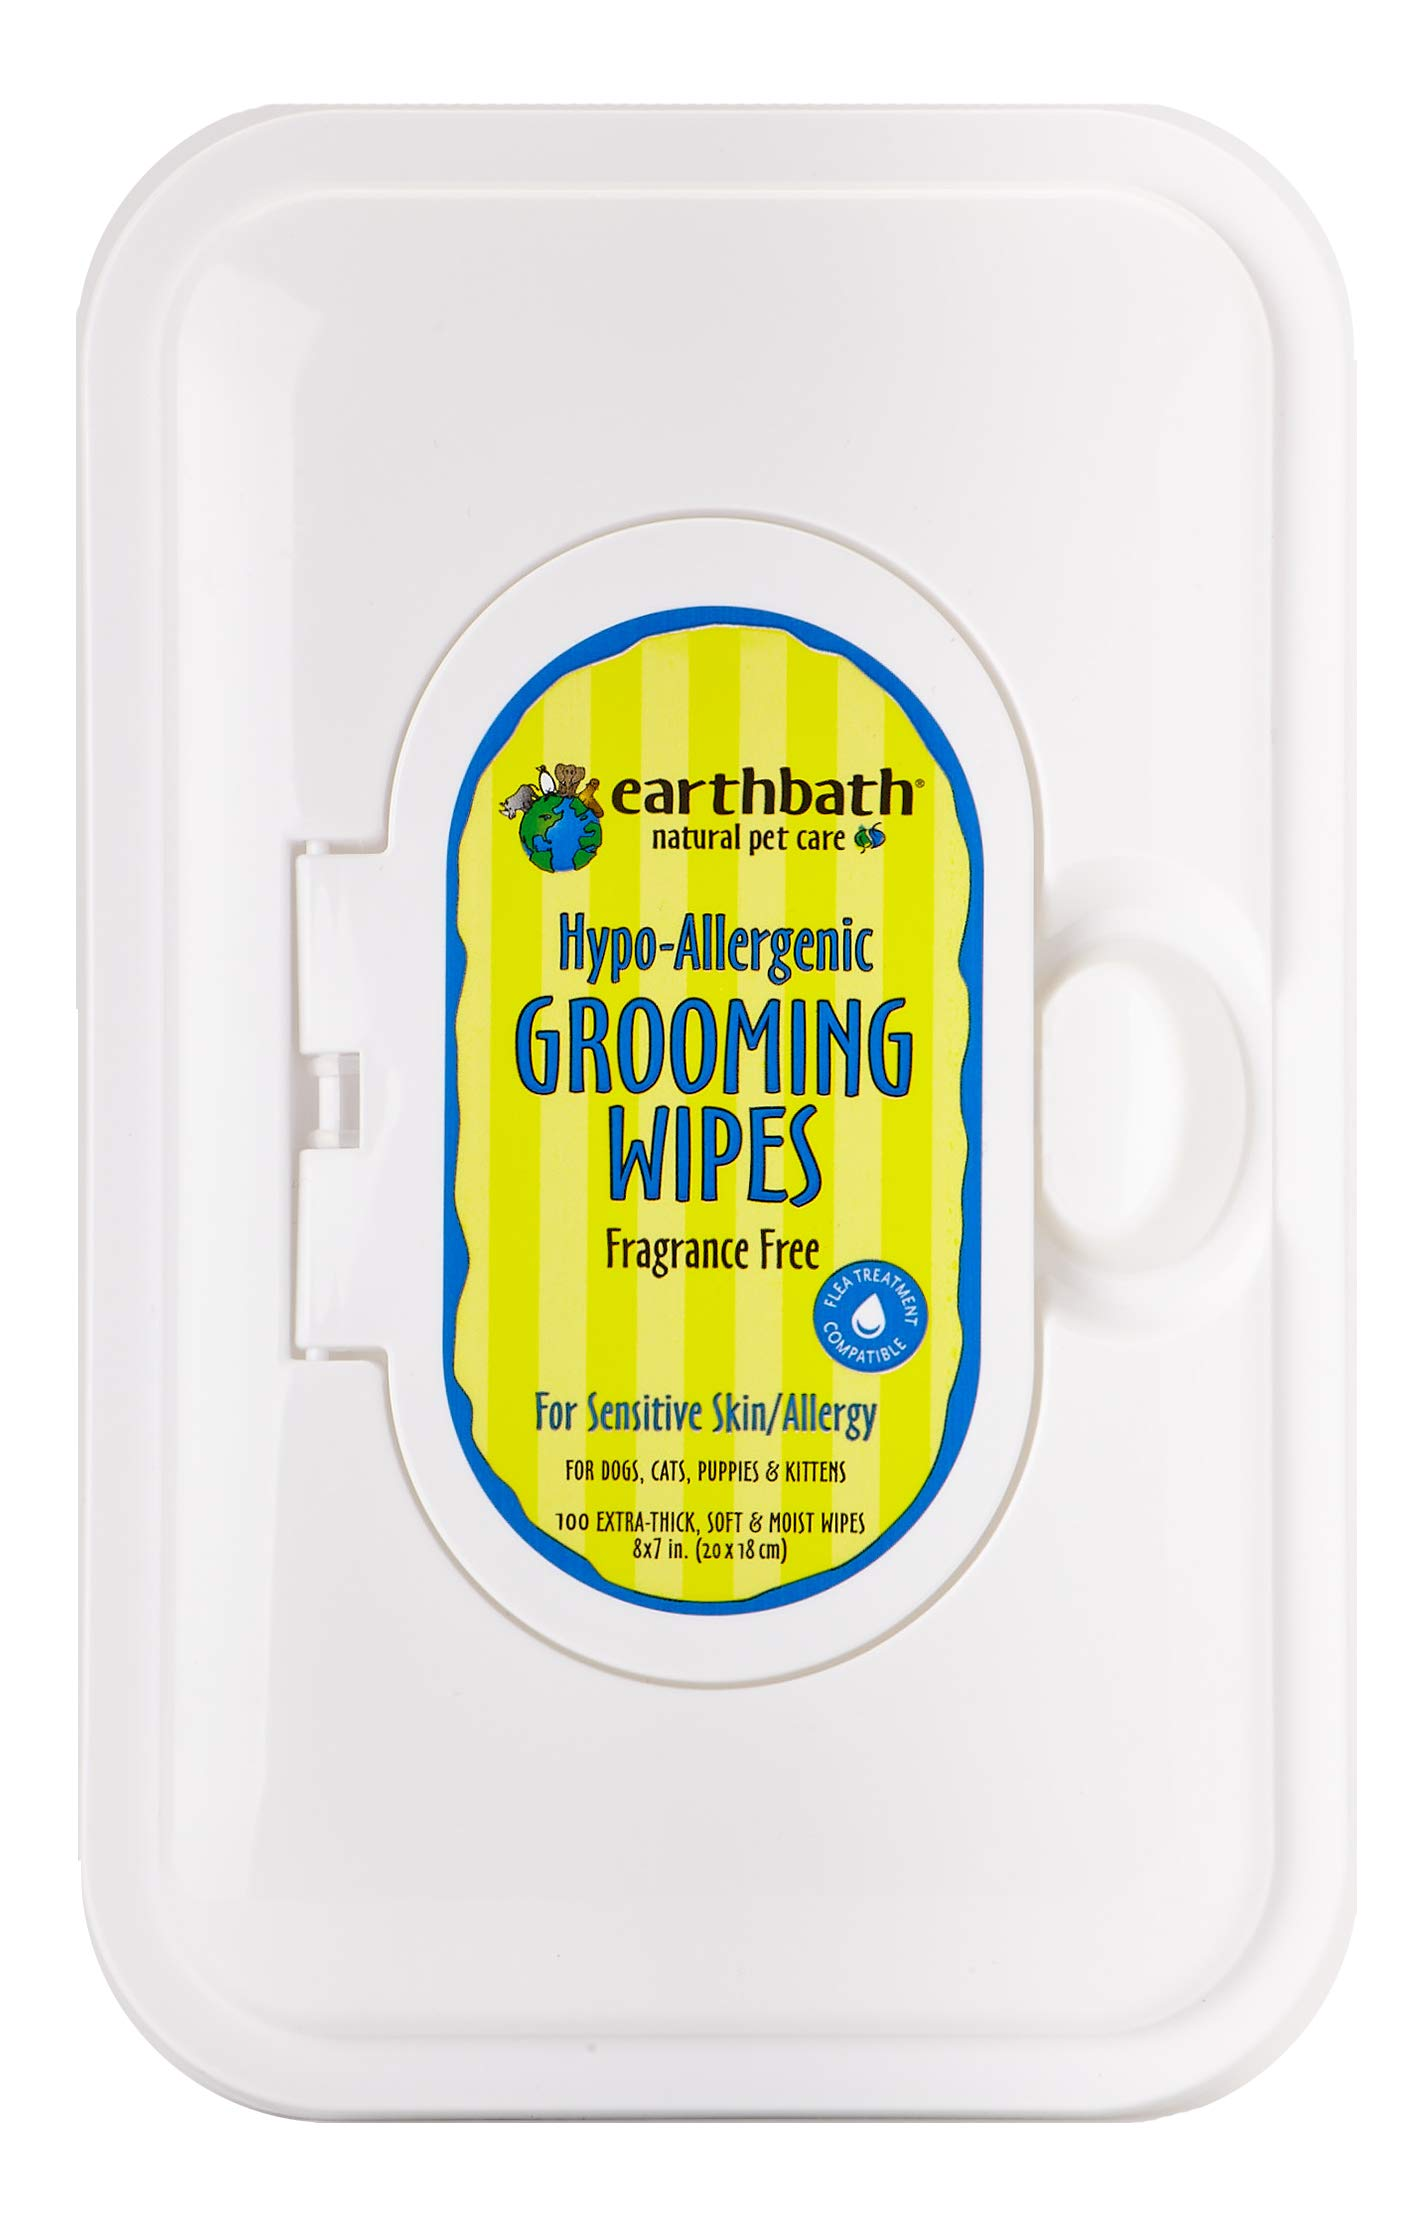 Earthbath All Natural Grooming Wipes, Hypo-Allergenic and Fragrence Free - Pack of 1 by Earthbath